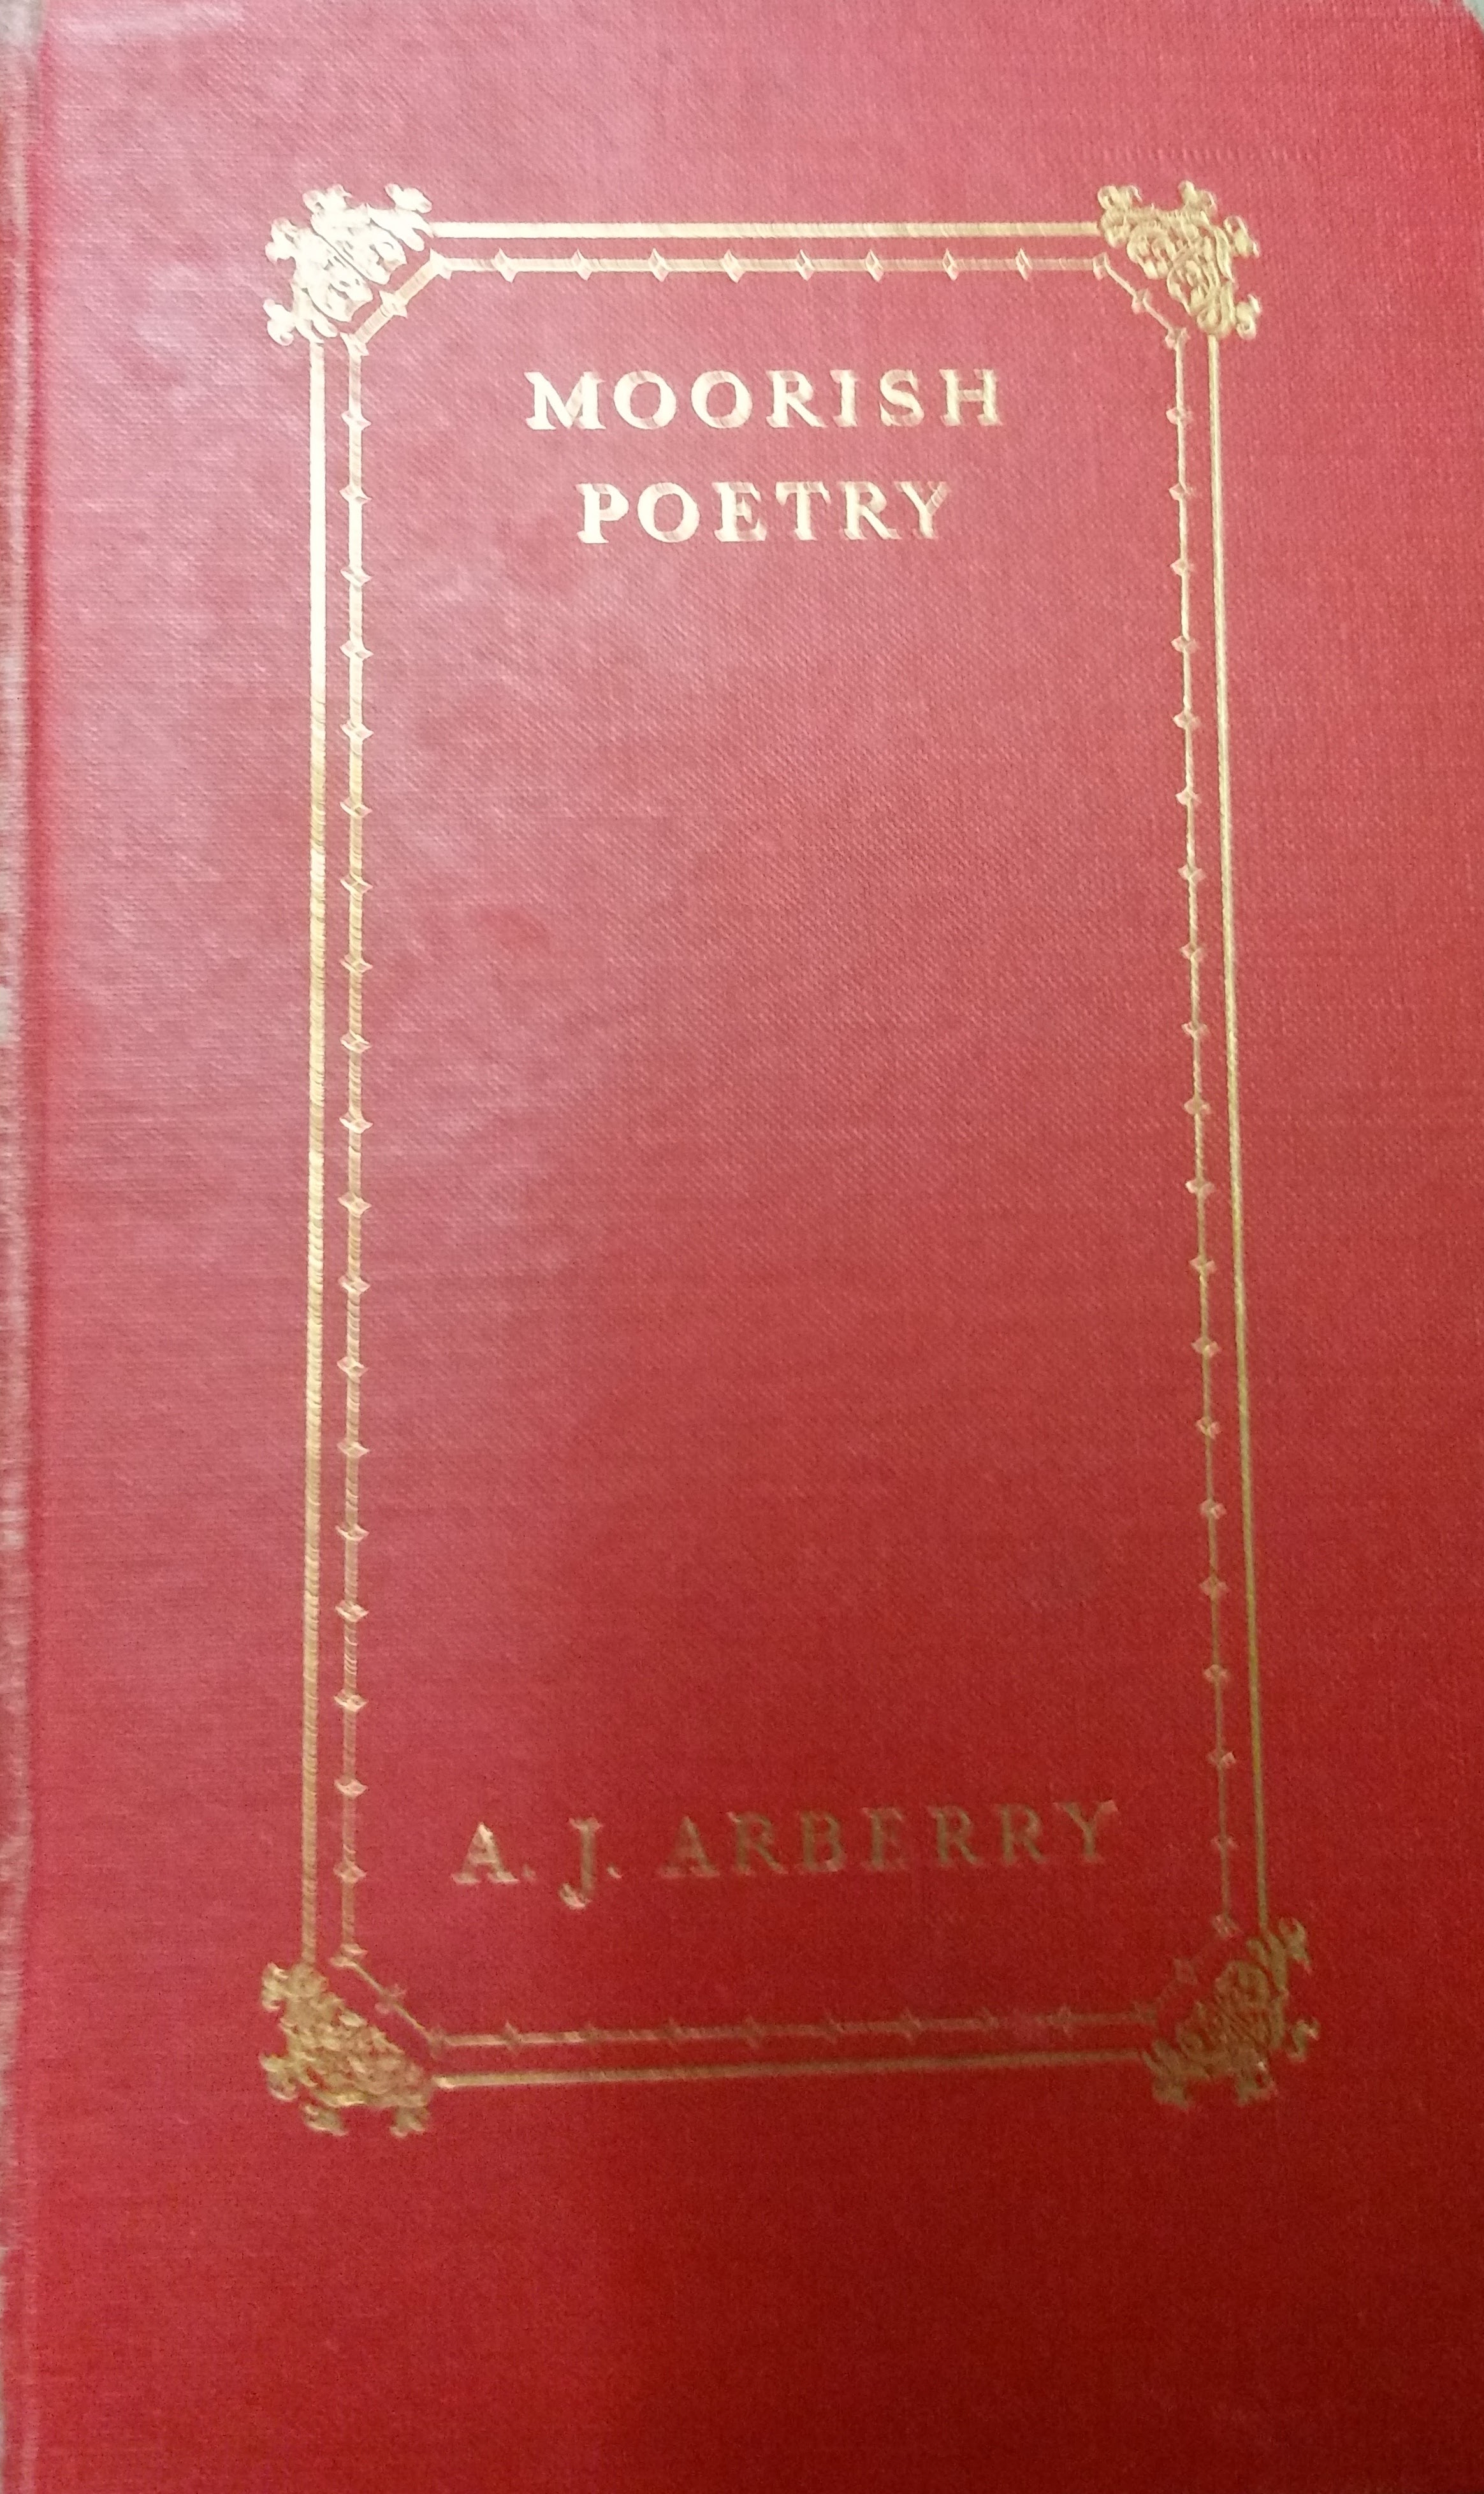 A.J. Arberry, Moorish Poetry (a translation of The pennants, an anthology compiled in 1243 by the Andalusian Ibn Saʻid)(Cambridge: Cambridge University Press, 1953)